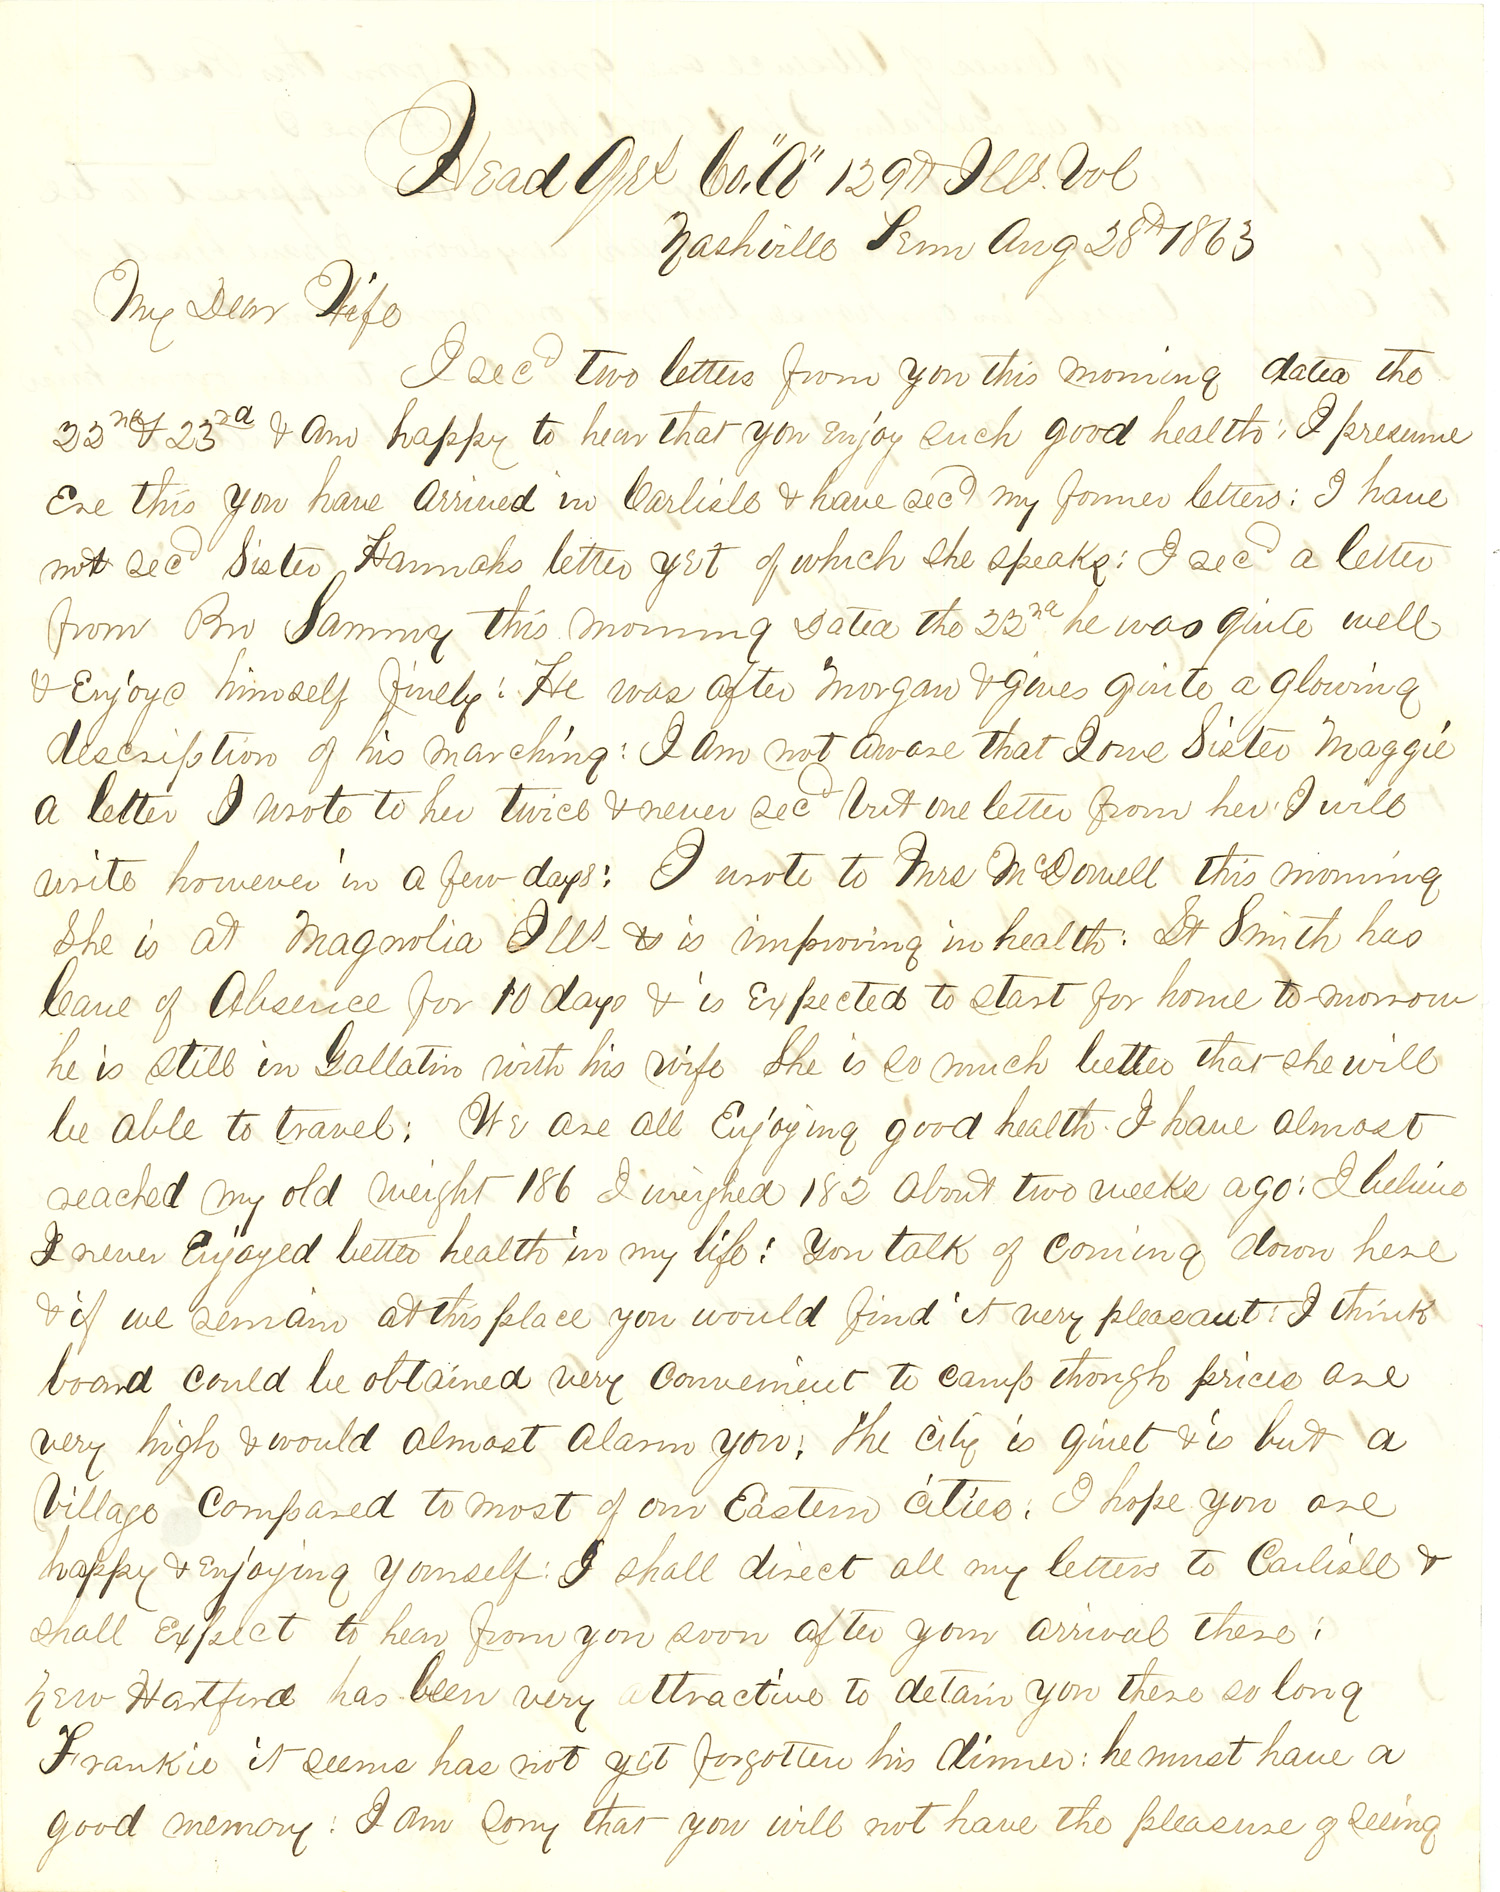 Joseph Culver Letter, August 28, 1863, Letter 2, Page 1